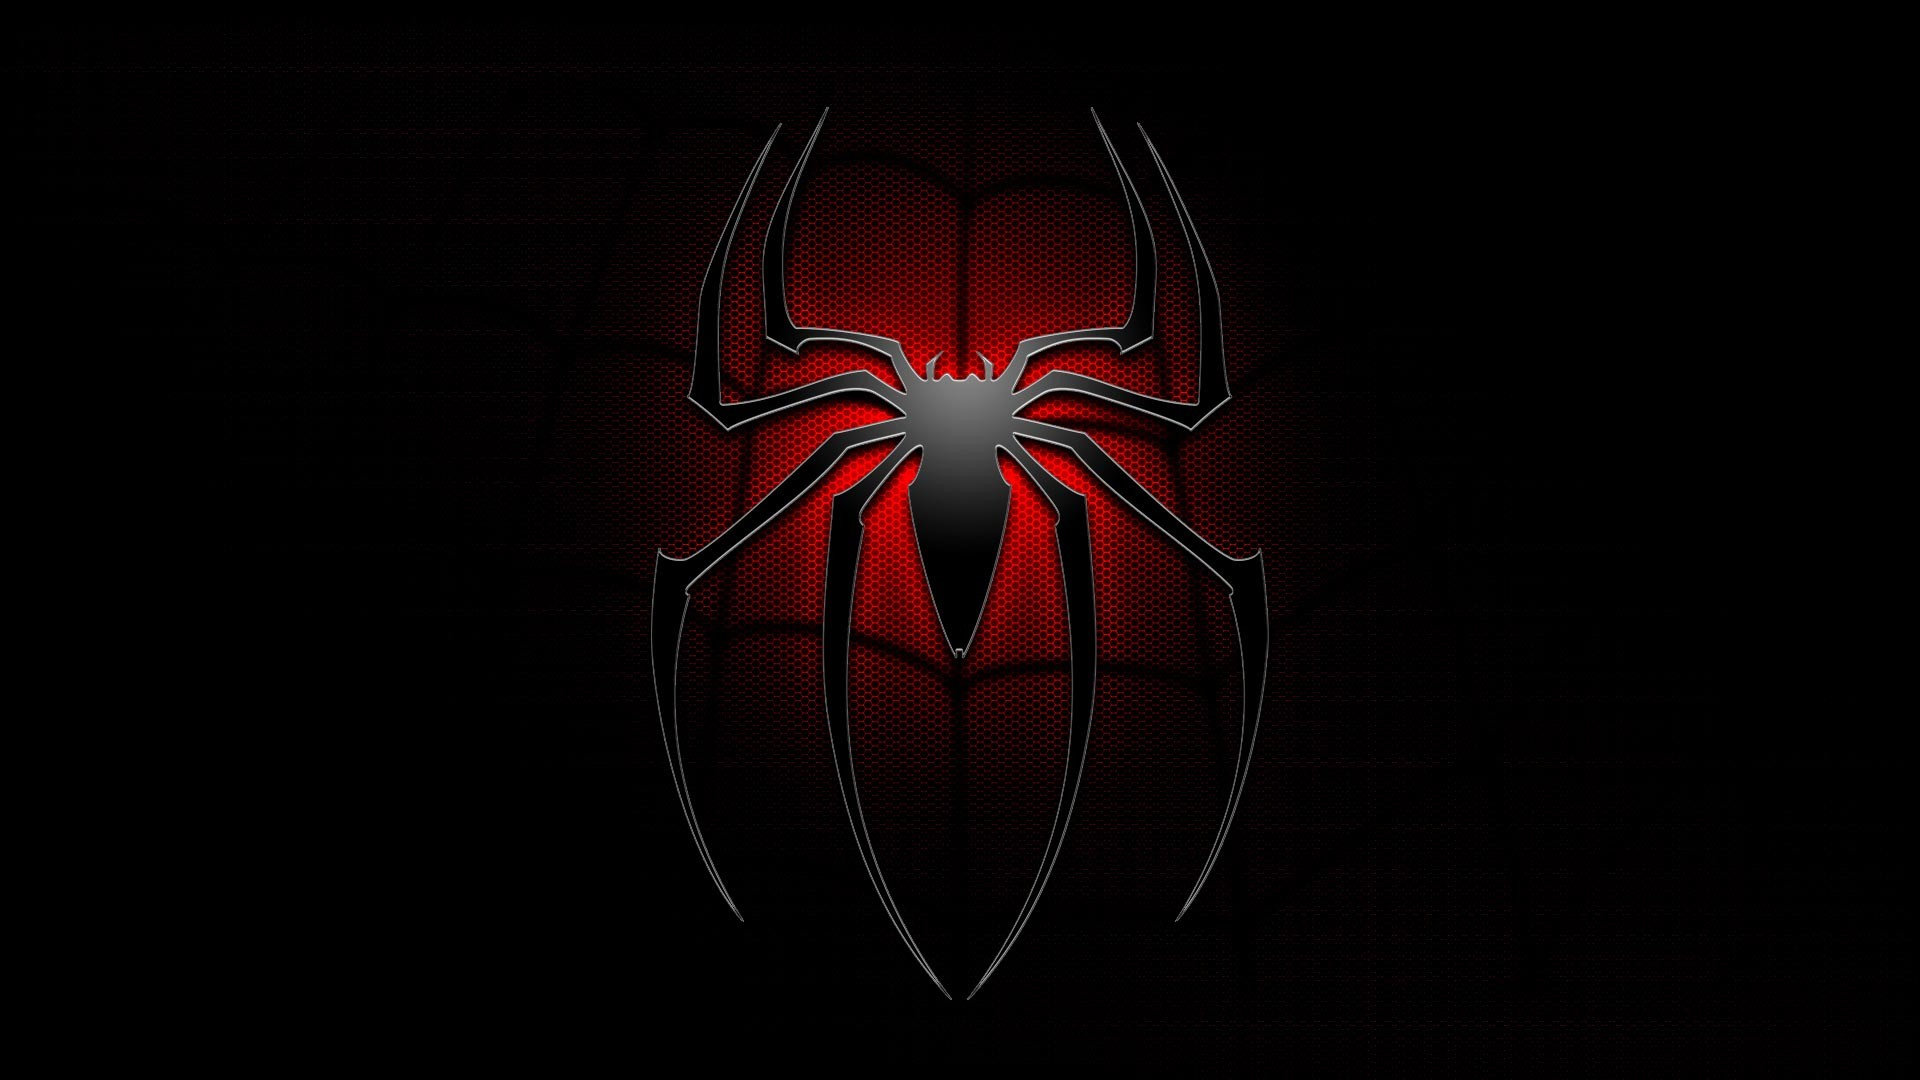 Spiderman Logo Wallpaper 67 images 1920x1080